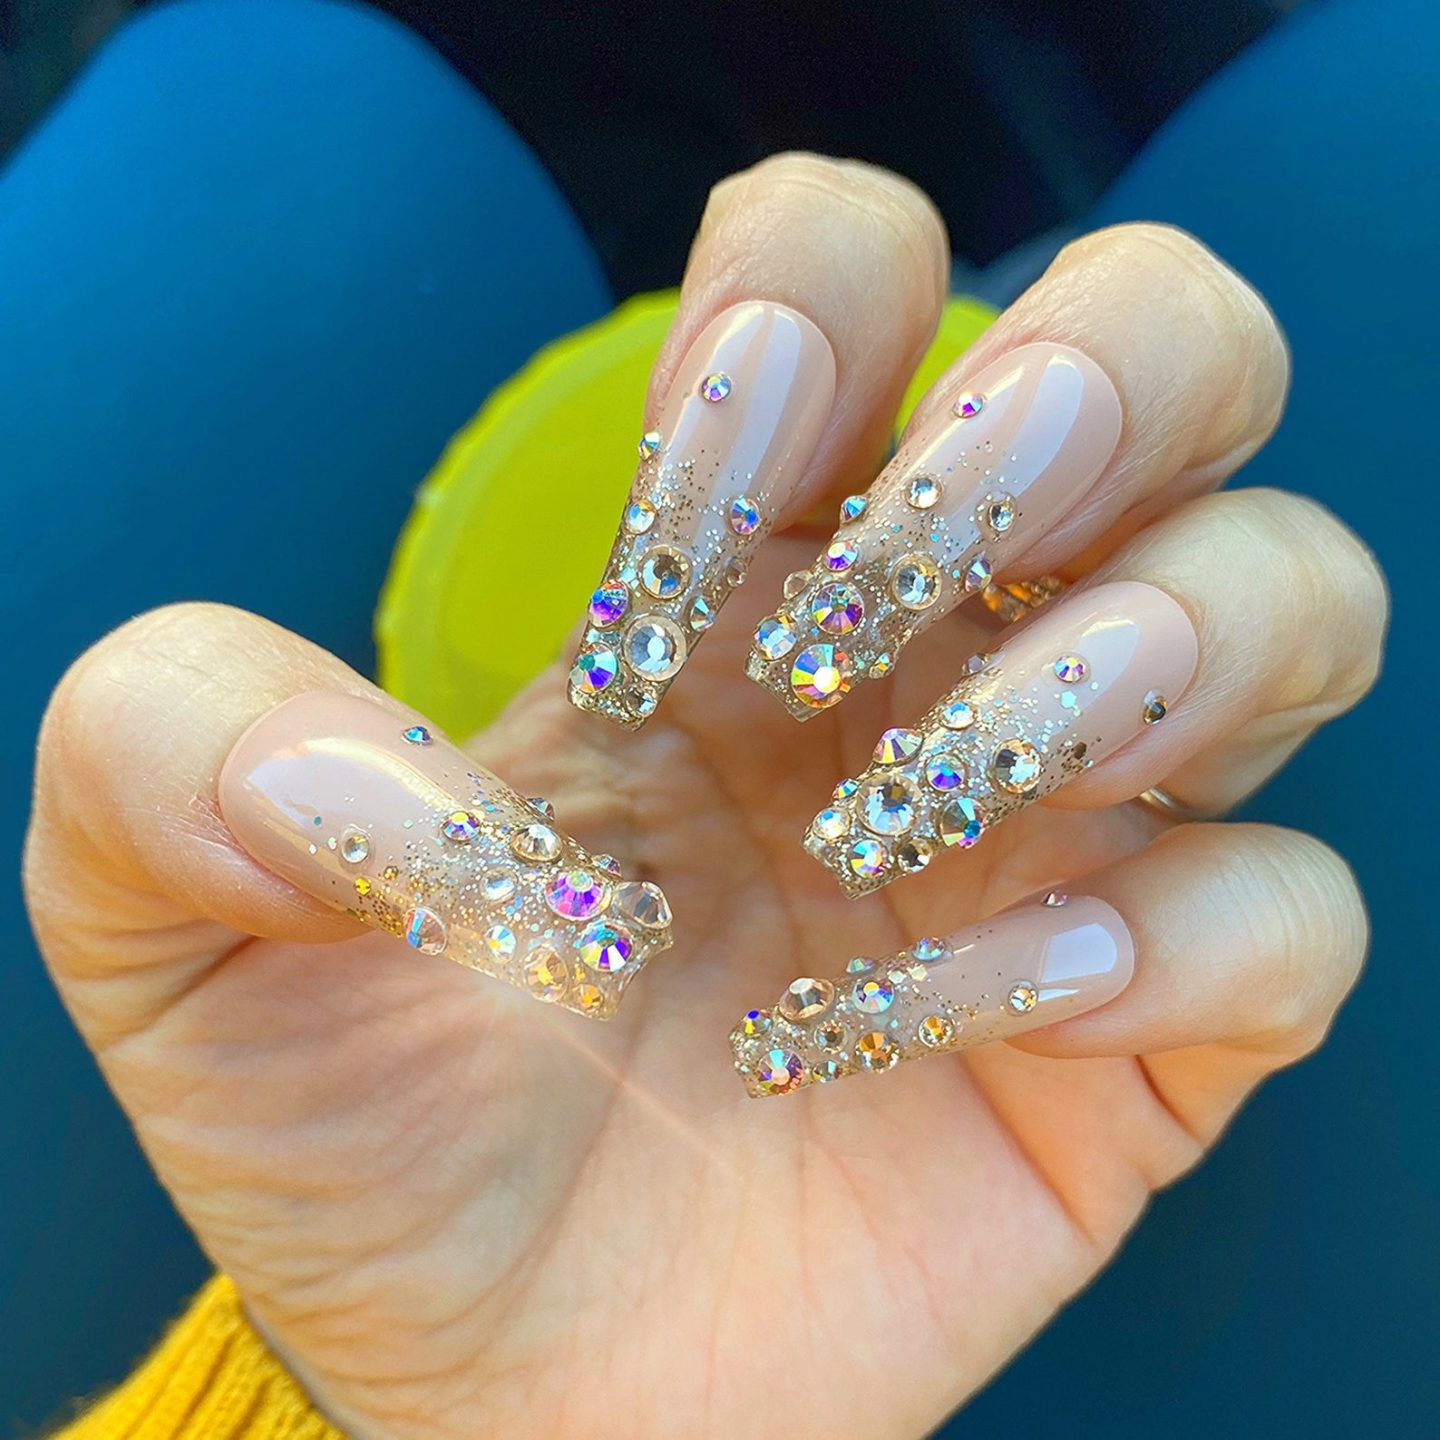 Nude and gold glitter coffin nails with rhinestones